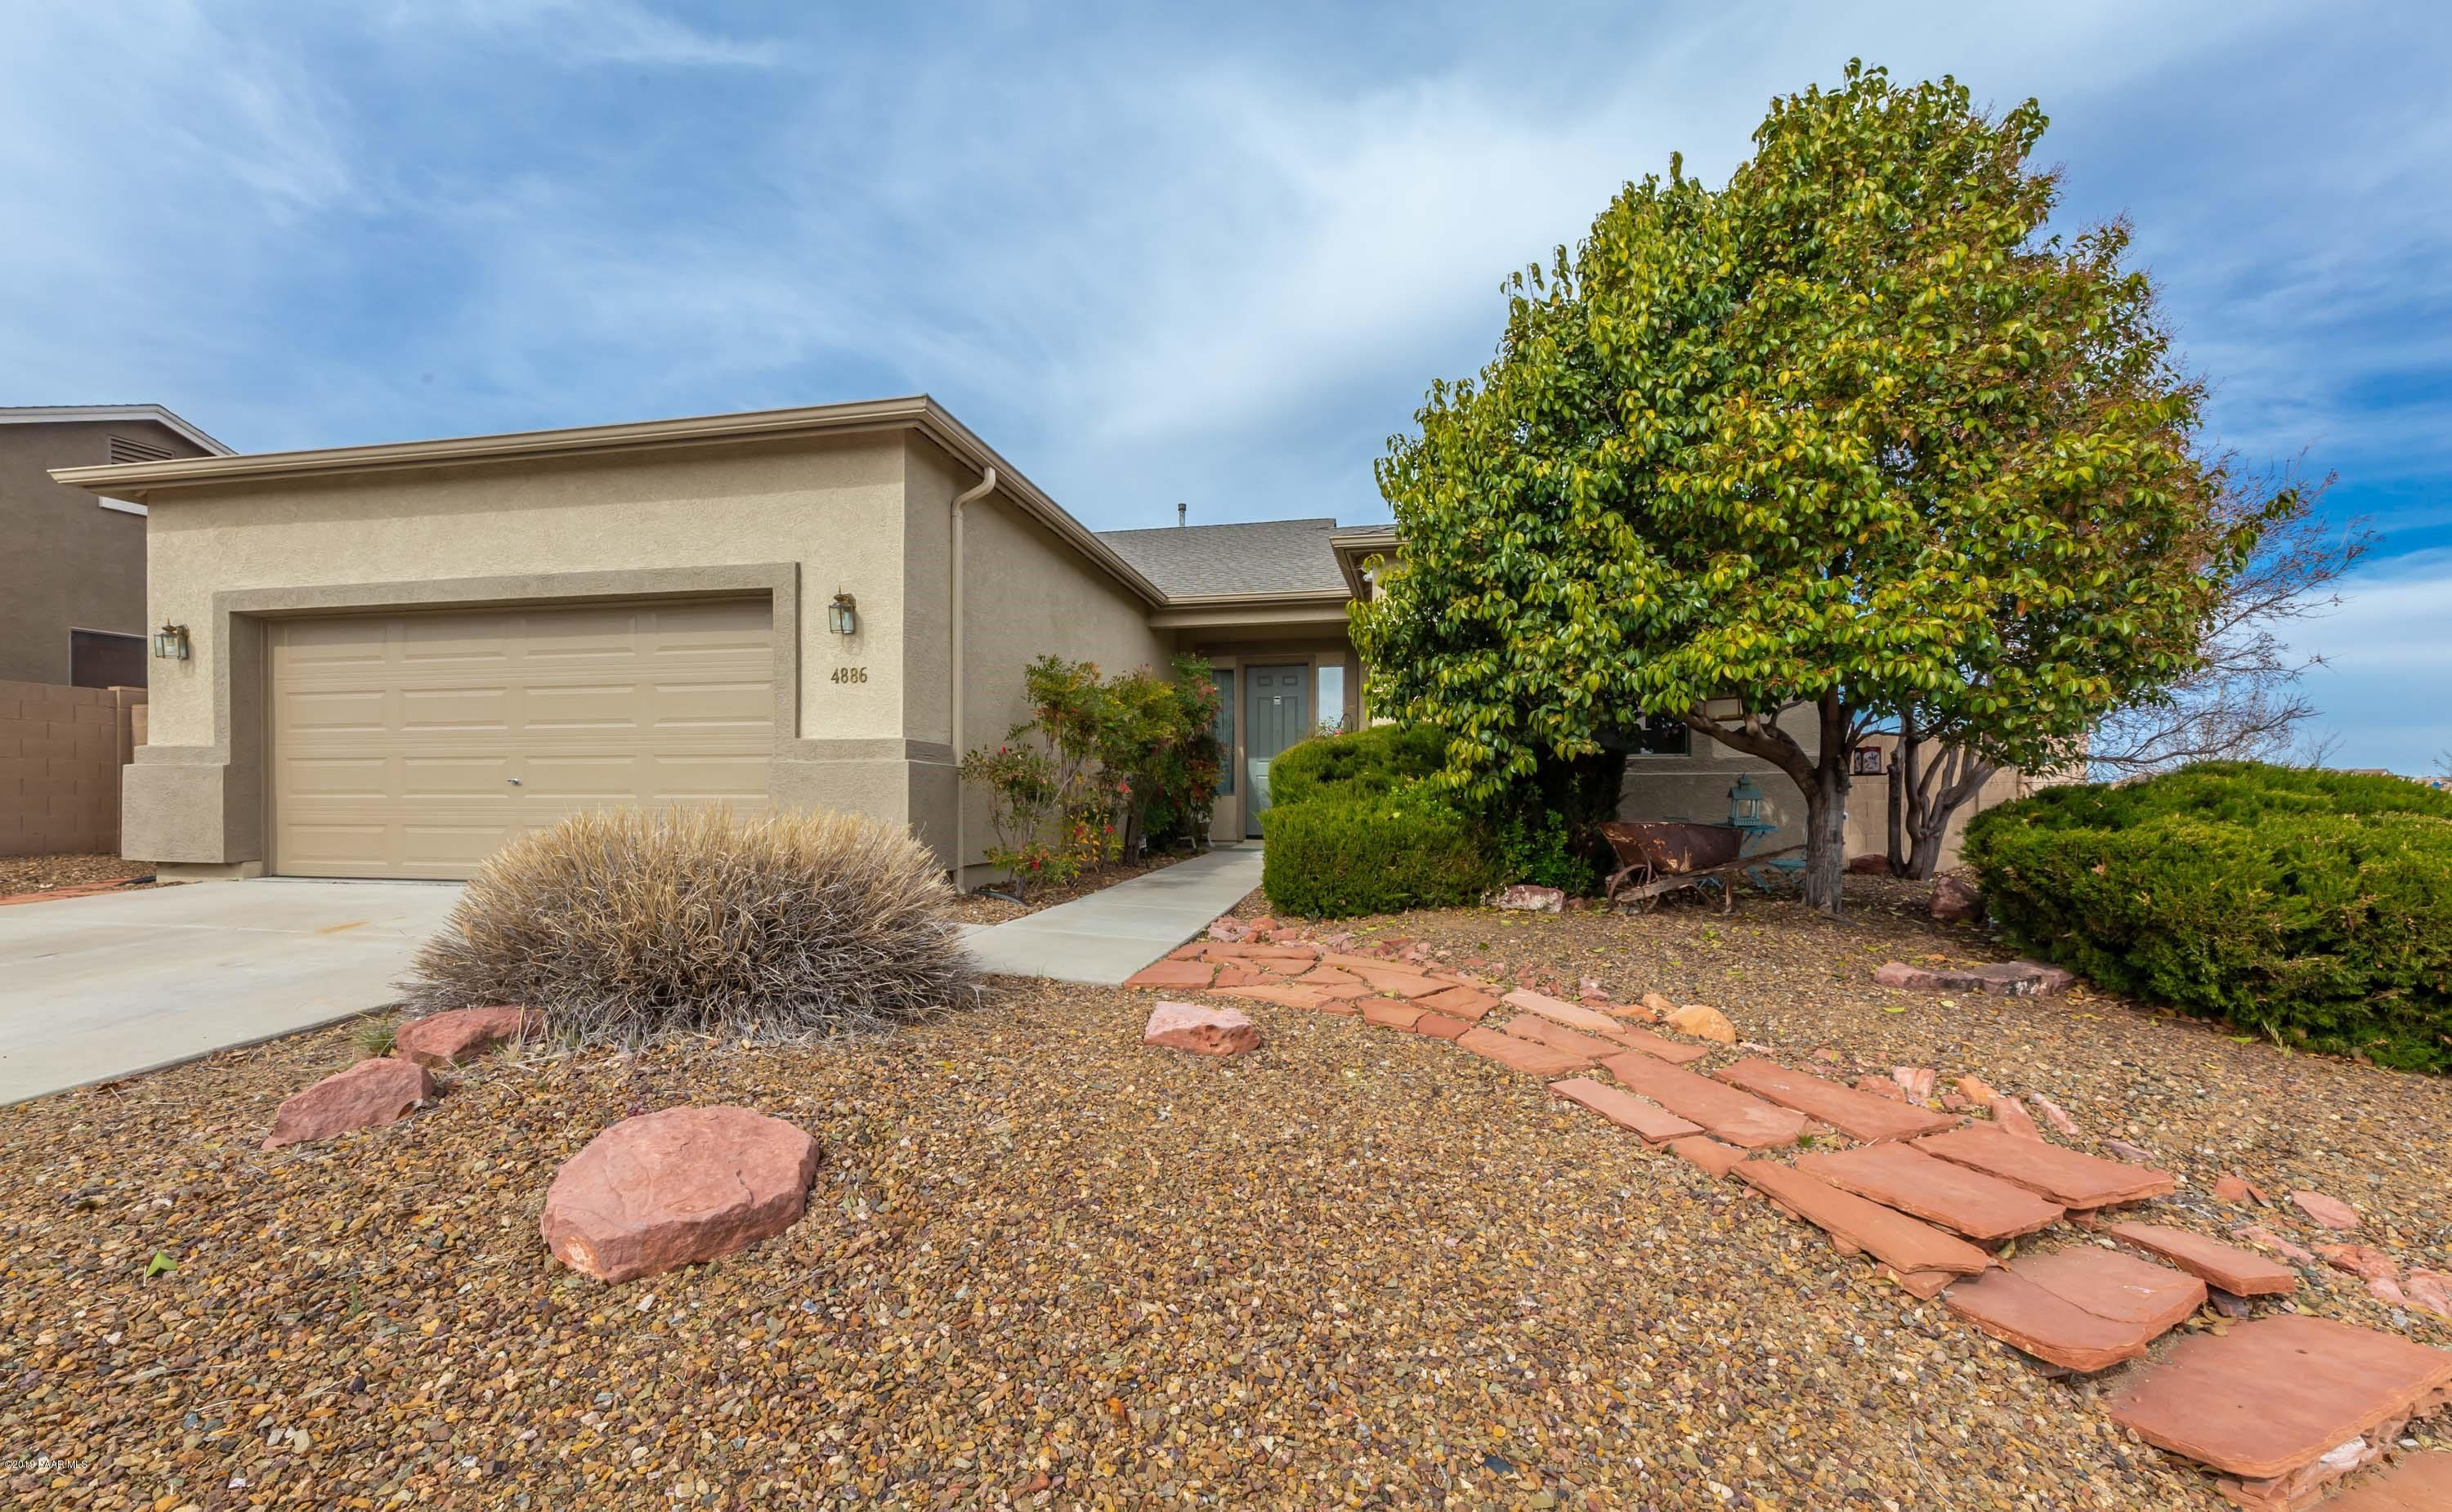 Photo of 4886 Wycliffe, Prescott Valley, AZ 86314